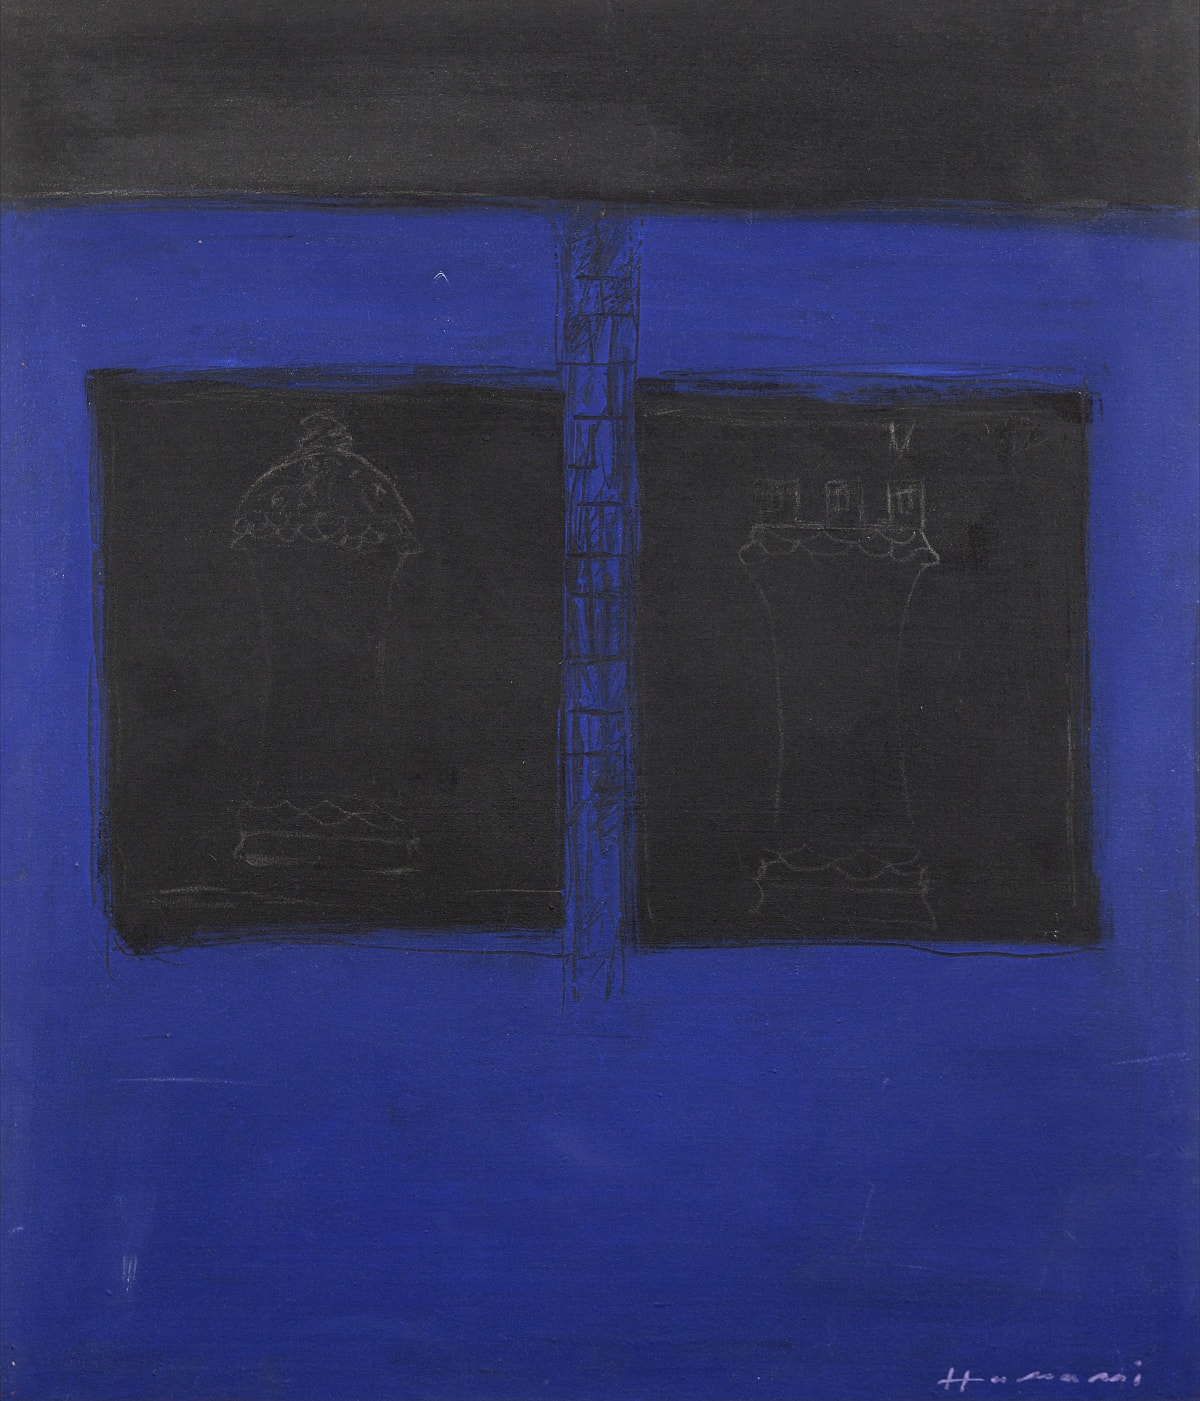 Saâd Hassani, Untitled